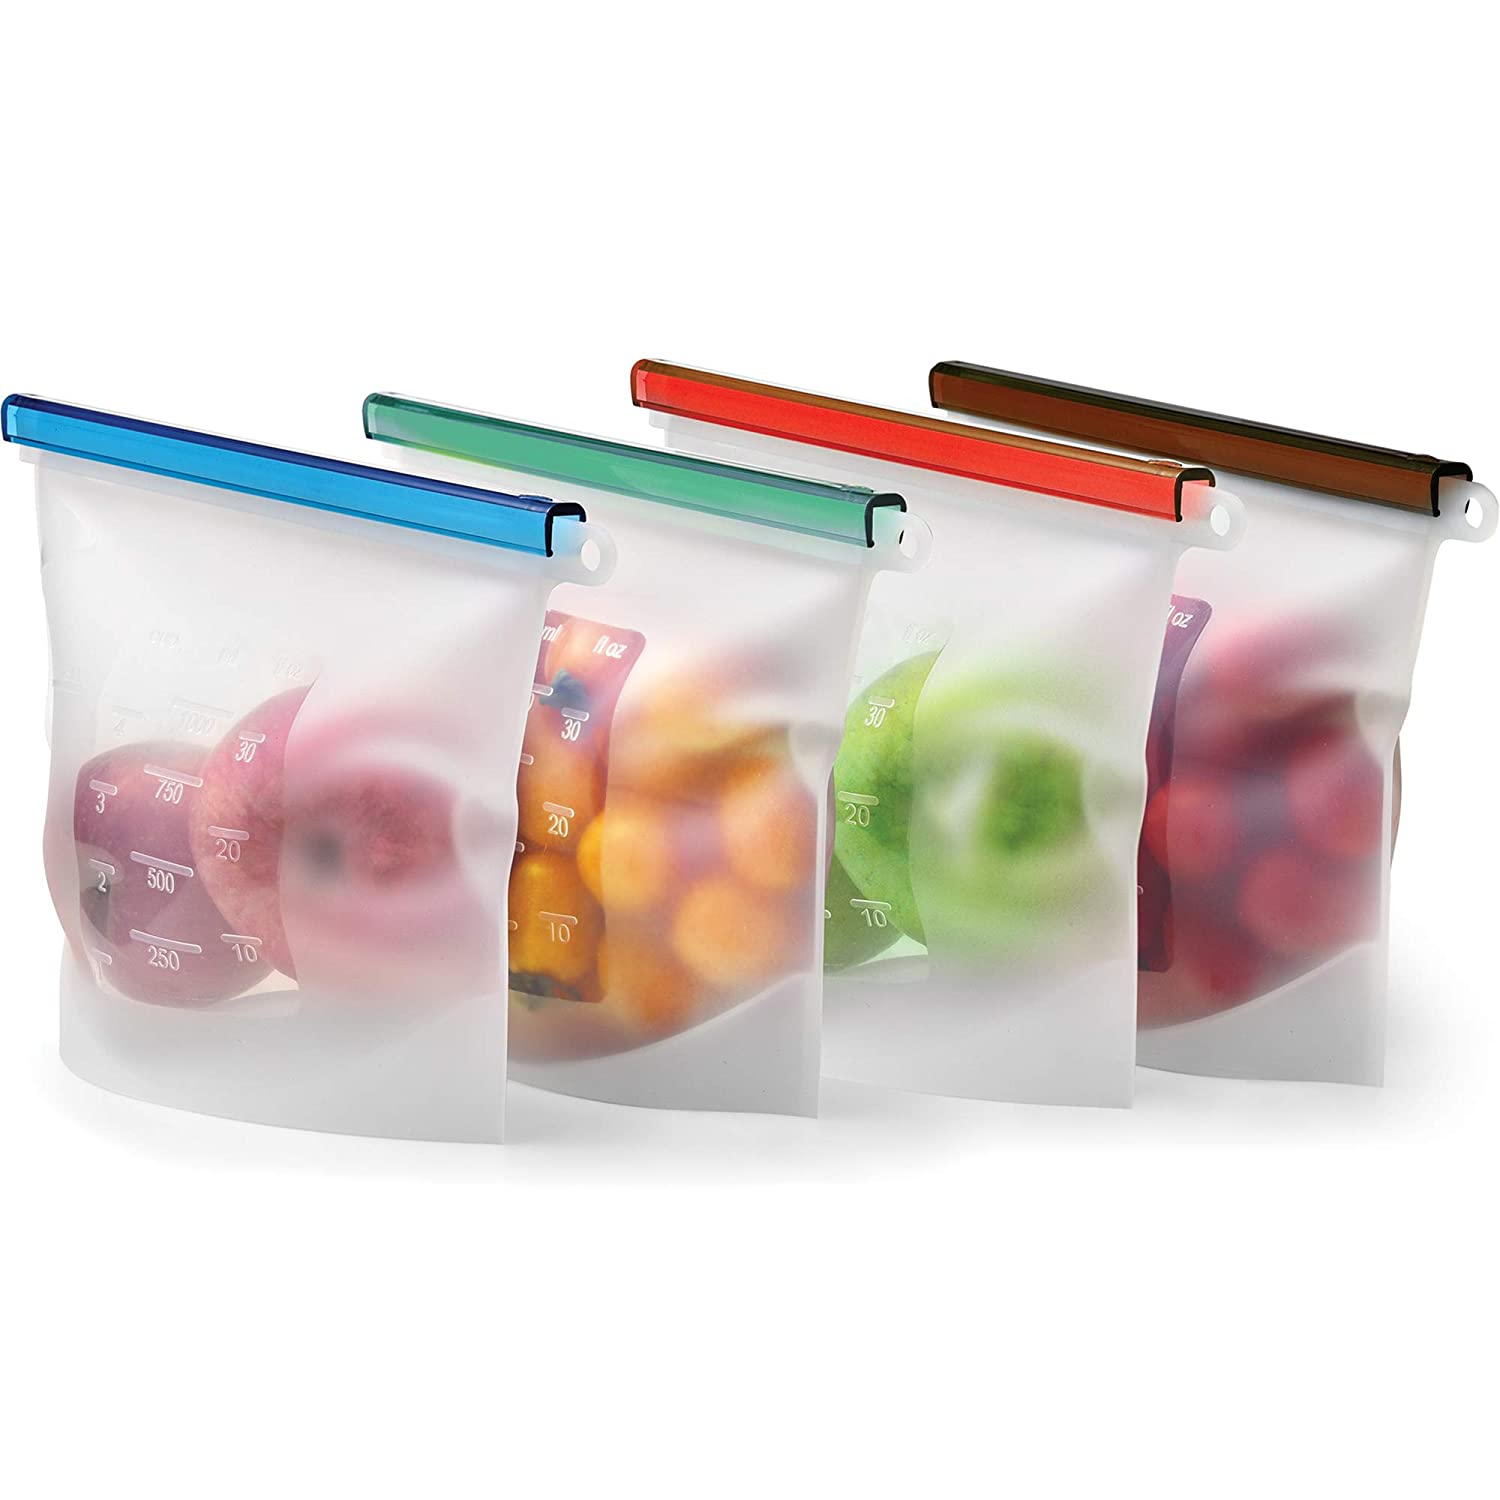 Reusable Silicone Food Storage Bag Set - 4 QUART Freezer Bags Airtight Seal - Hermetic Produce Storage Bag - Cooking Sous Vide Bags Clear - Ziplock Bags for Lunch & Snack - Sandwich Bag Kiva.World